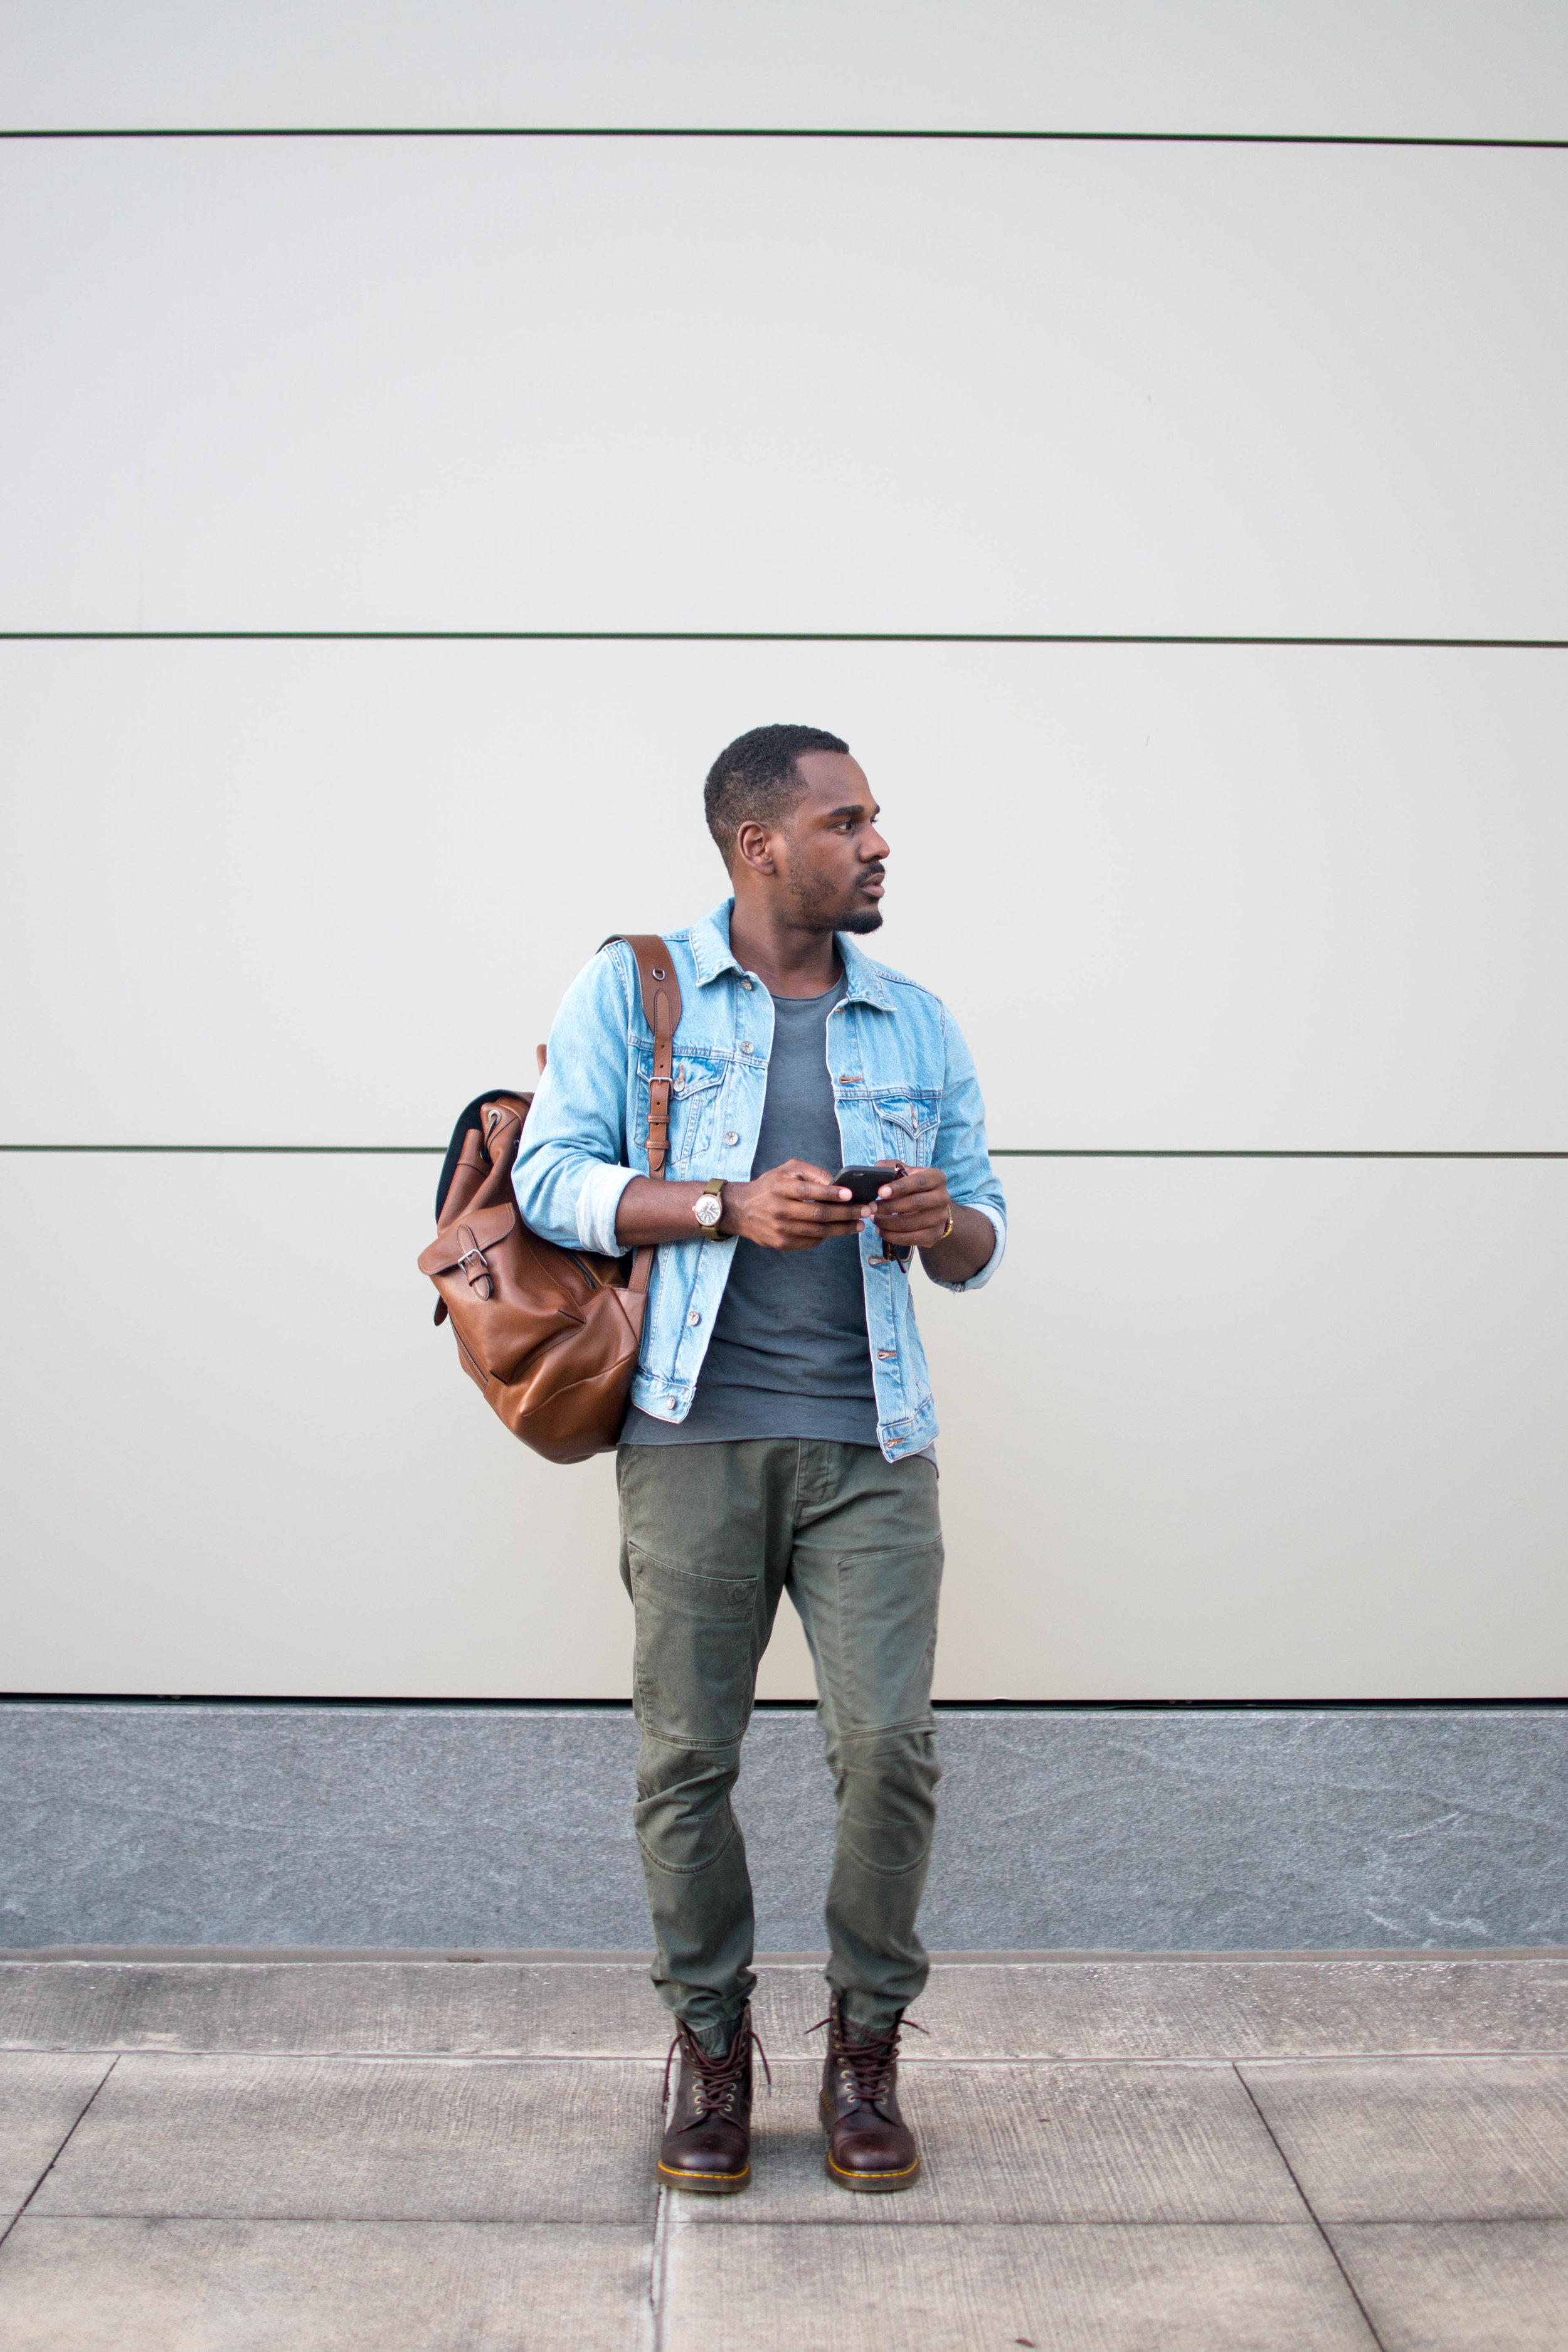 These green joggers are getting so much play this fall in my relaxed looks! I've been⠀ paying a lot more attention to the materials of my clothing lately. These joggers are made out of⠀ cotton, so they're comfortable and breathable. Joggers like these are definitely a fall closet⠀ essential!!⠀ @DiscoverCotton #GregsStyleGuide#ShopCotton